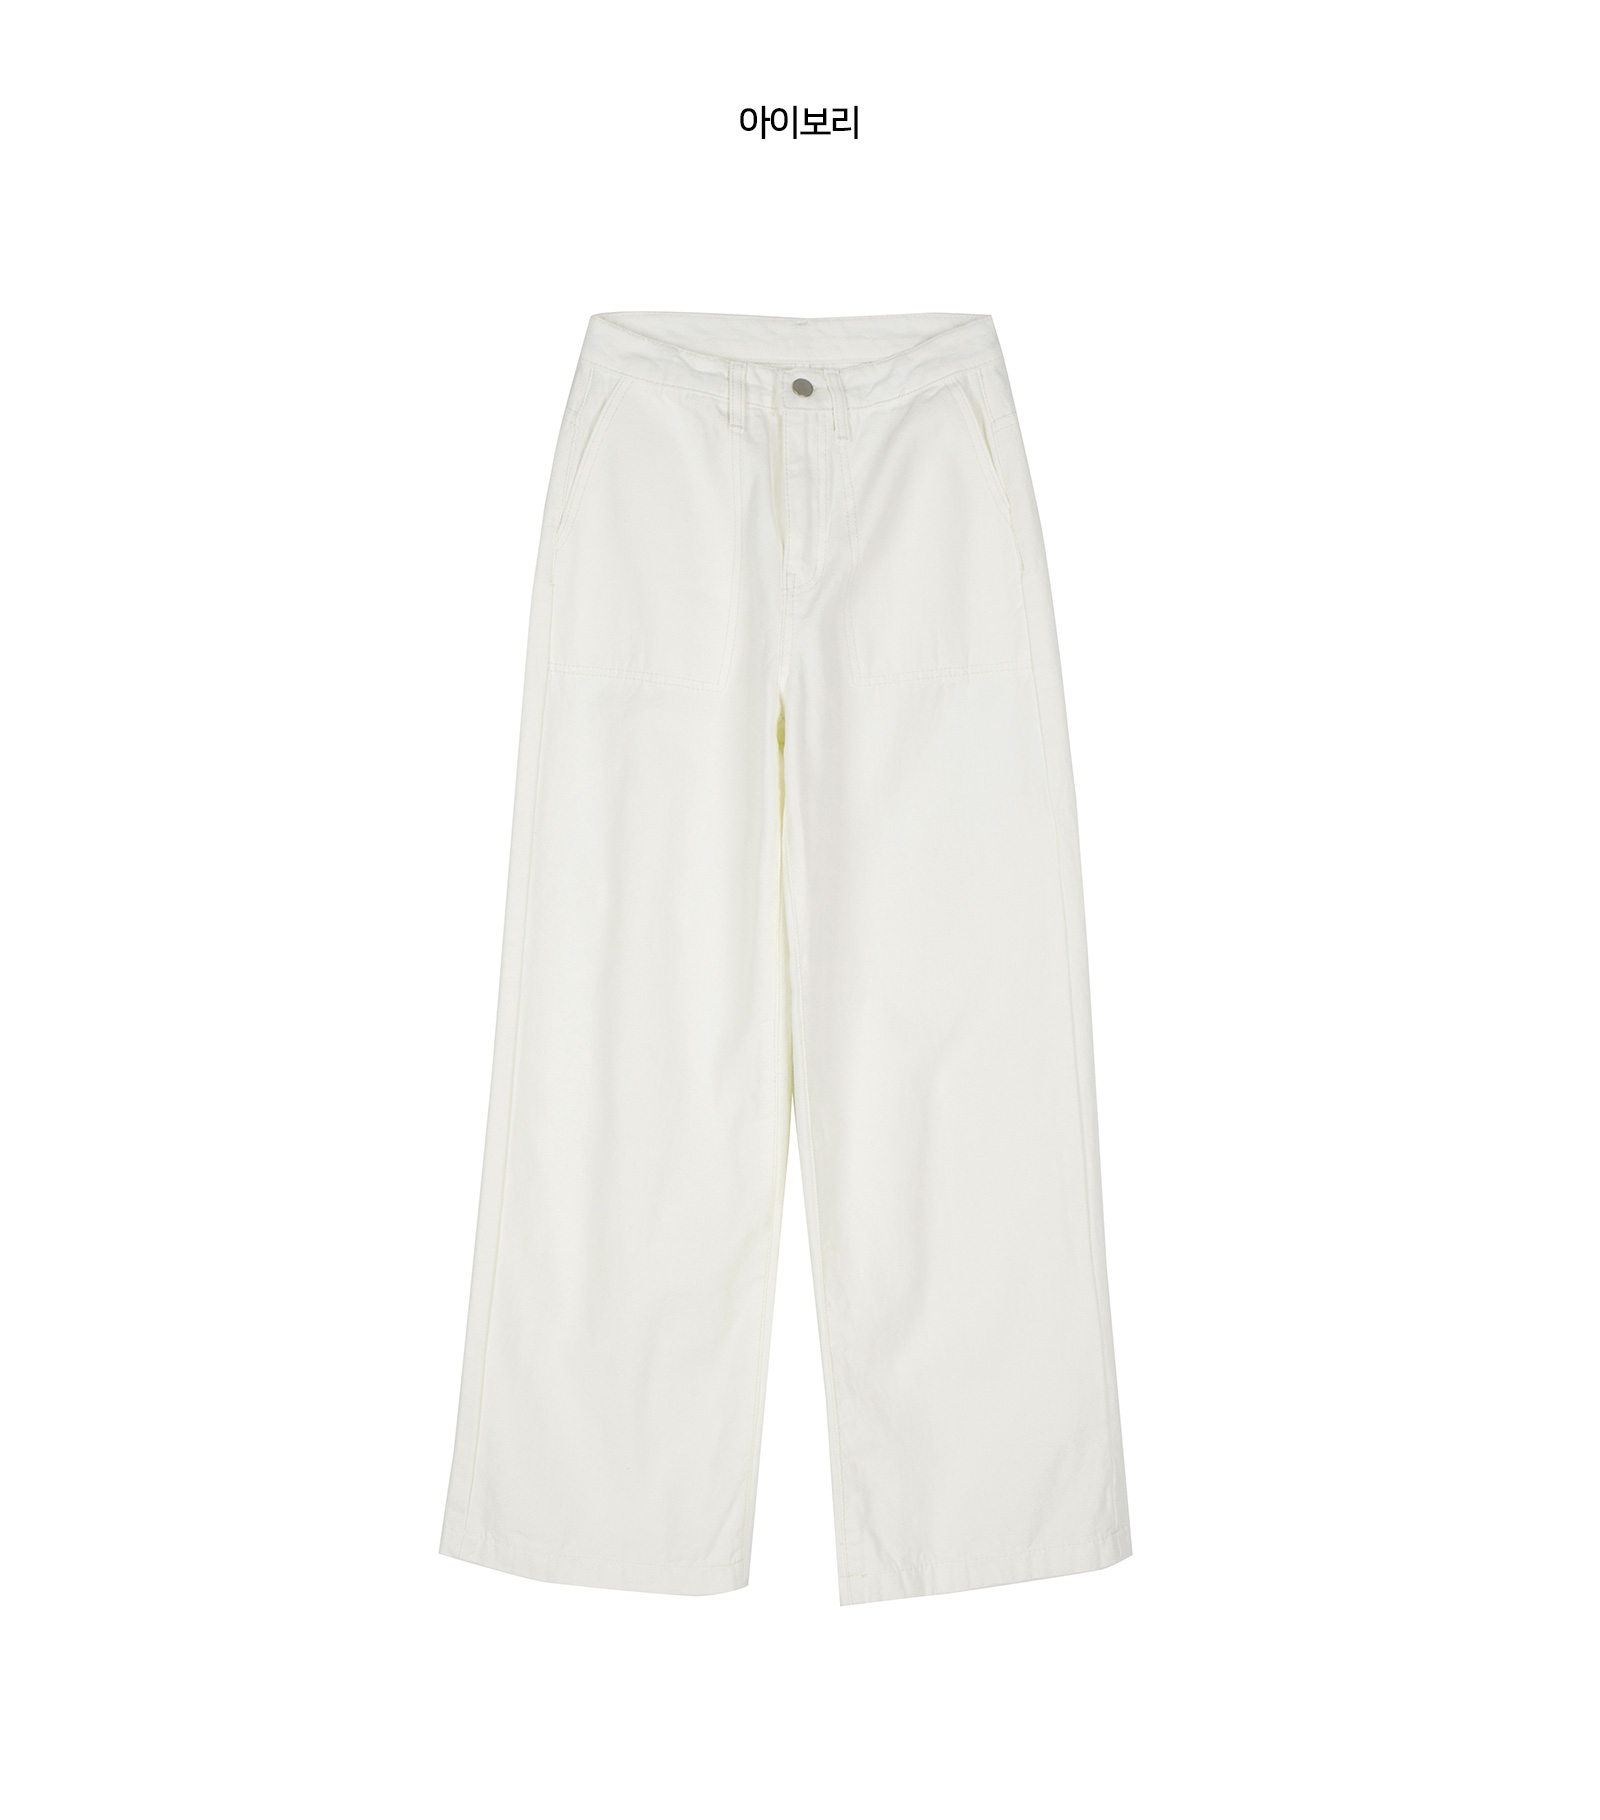 Stitch line cotton wide trousers